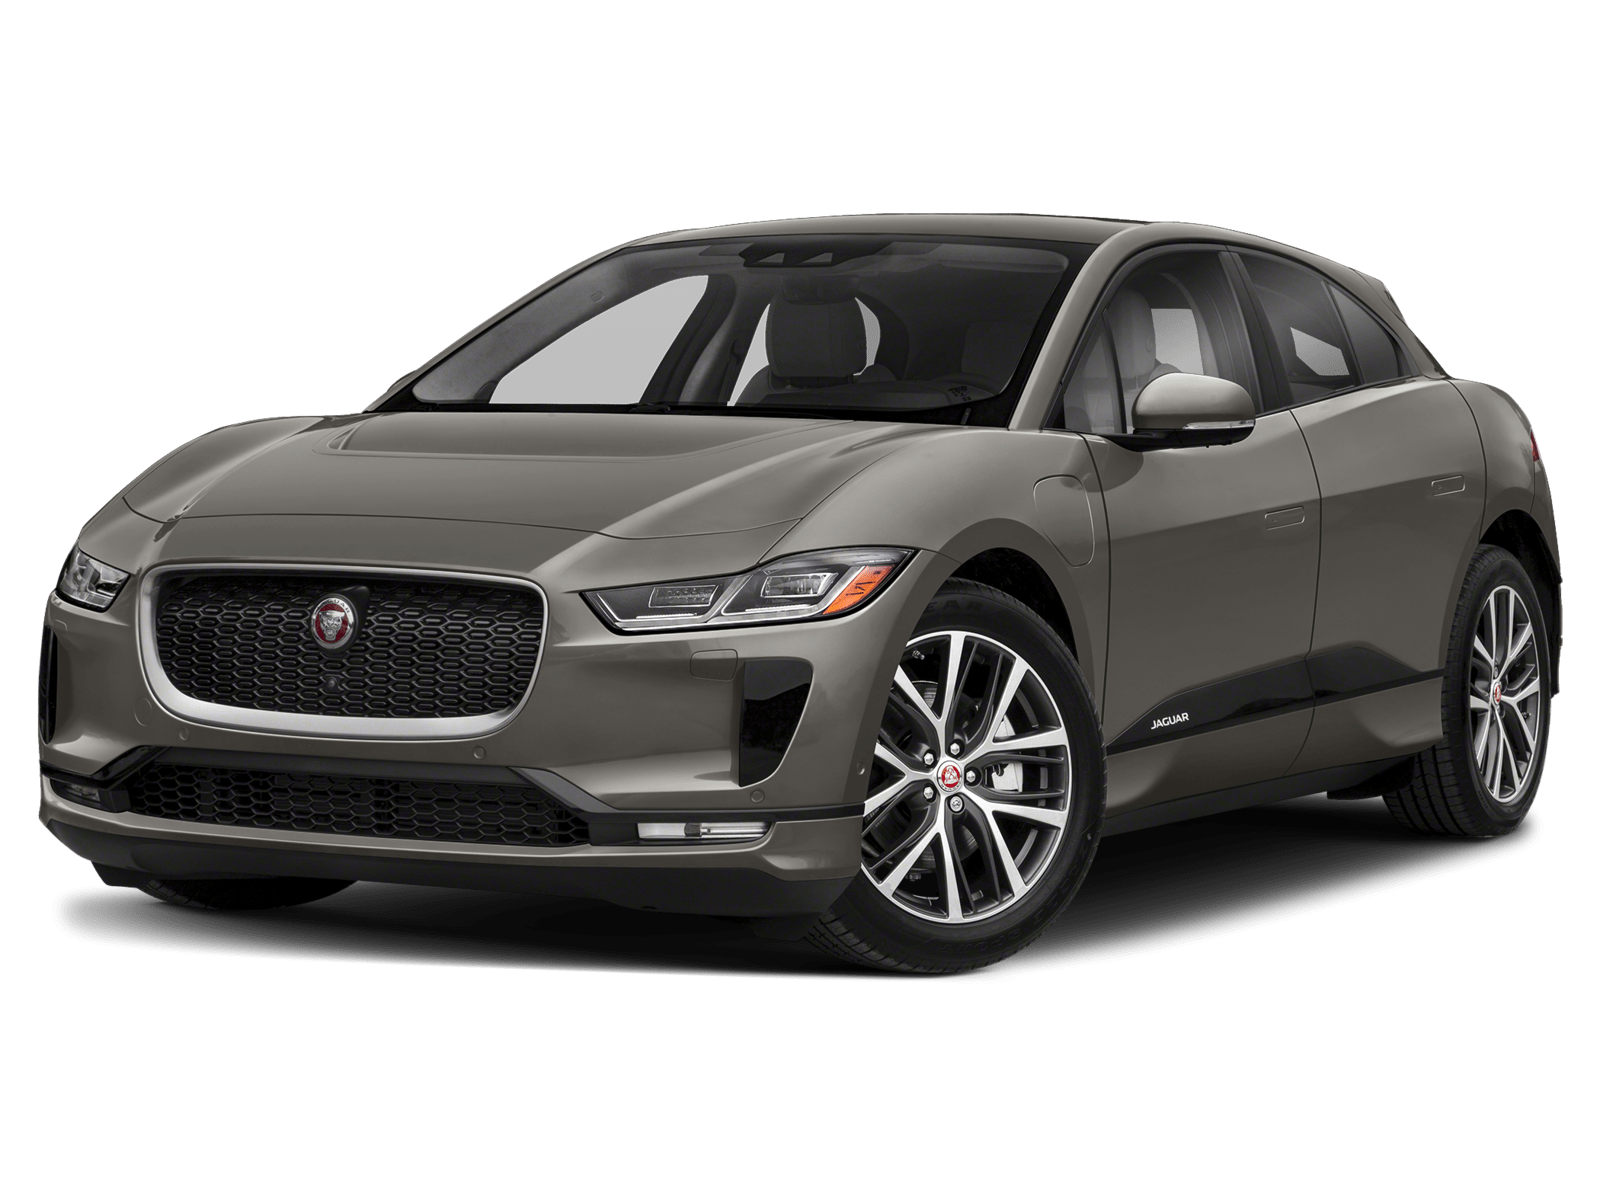 2020 jaguar i-pace | birchwood automotive group